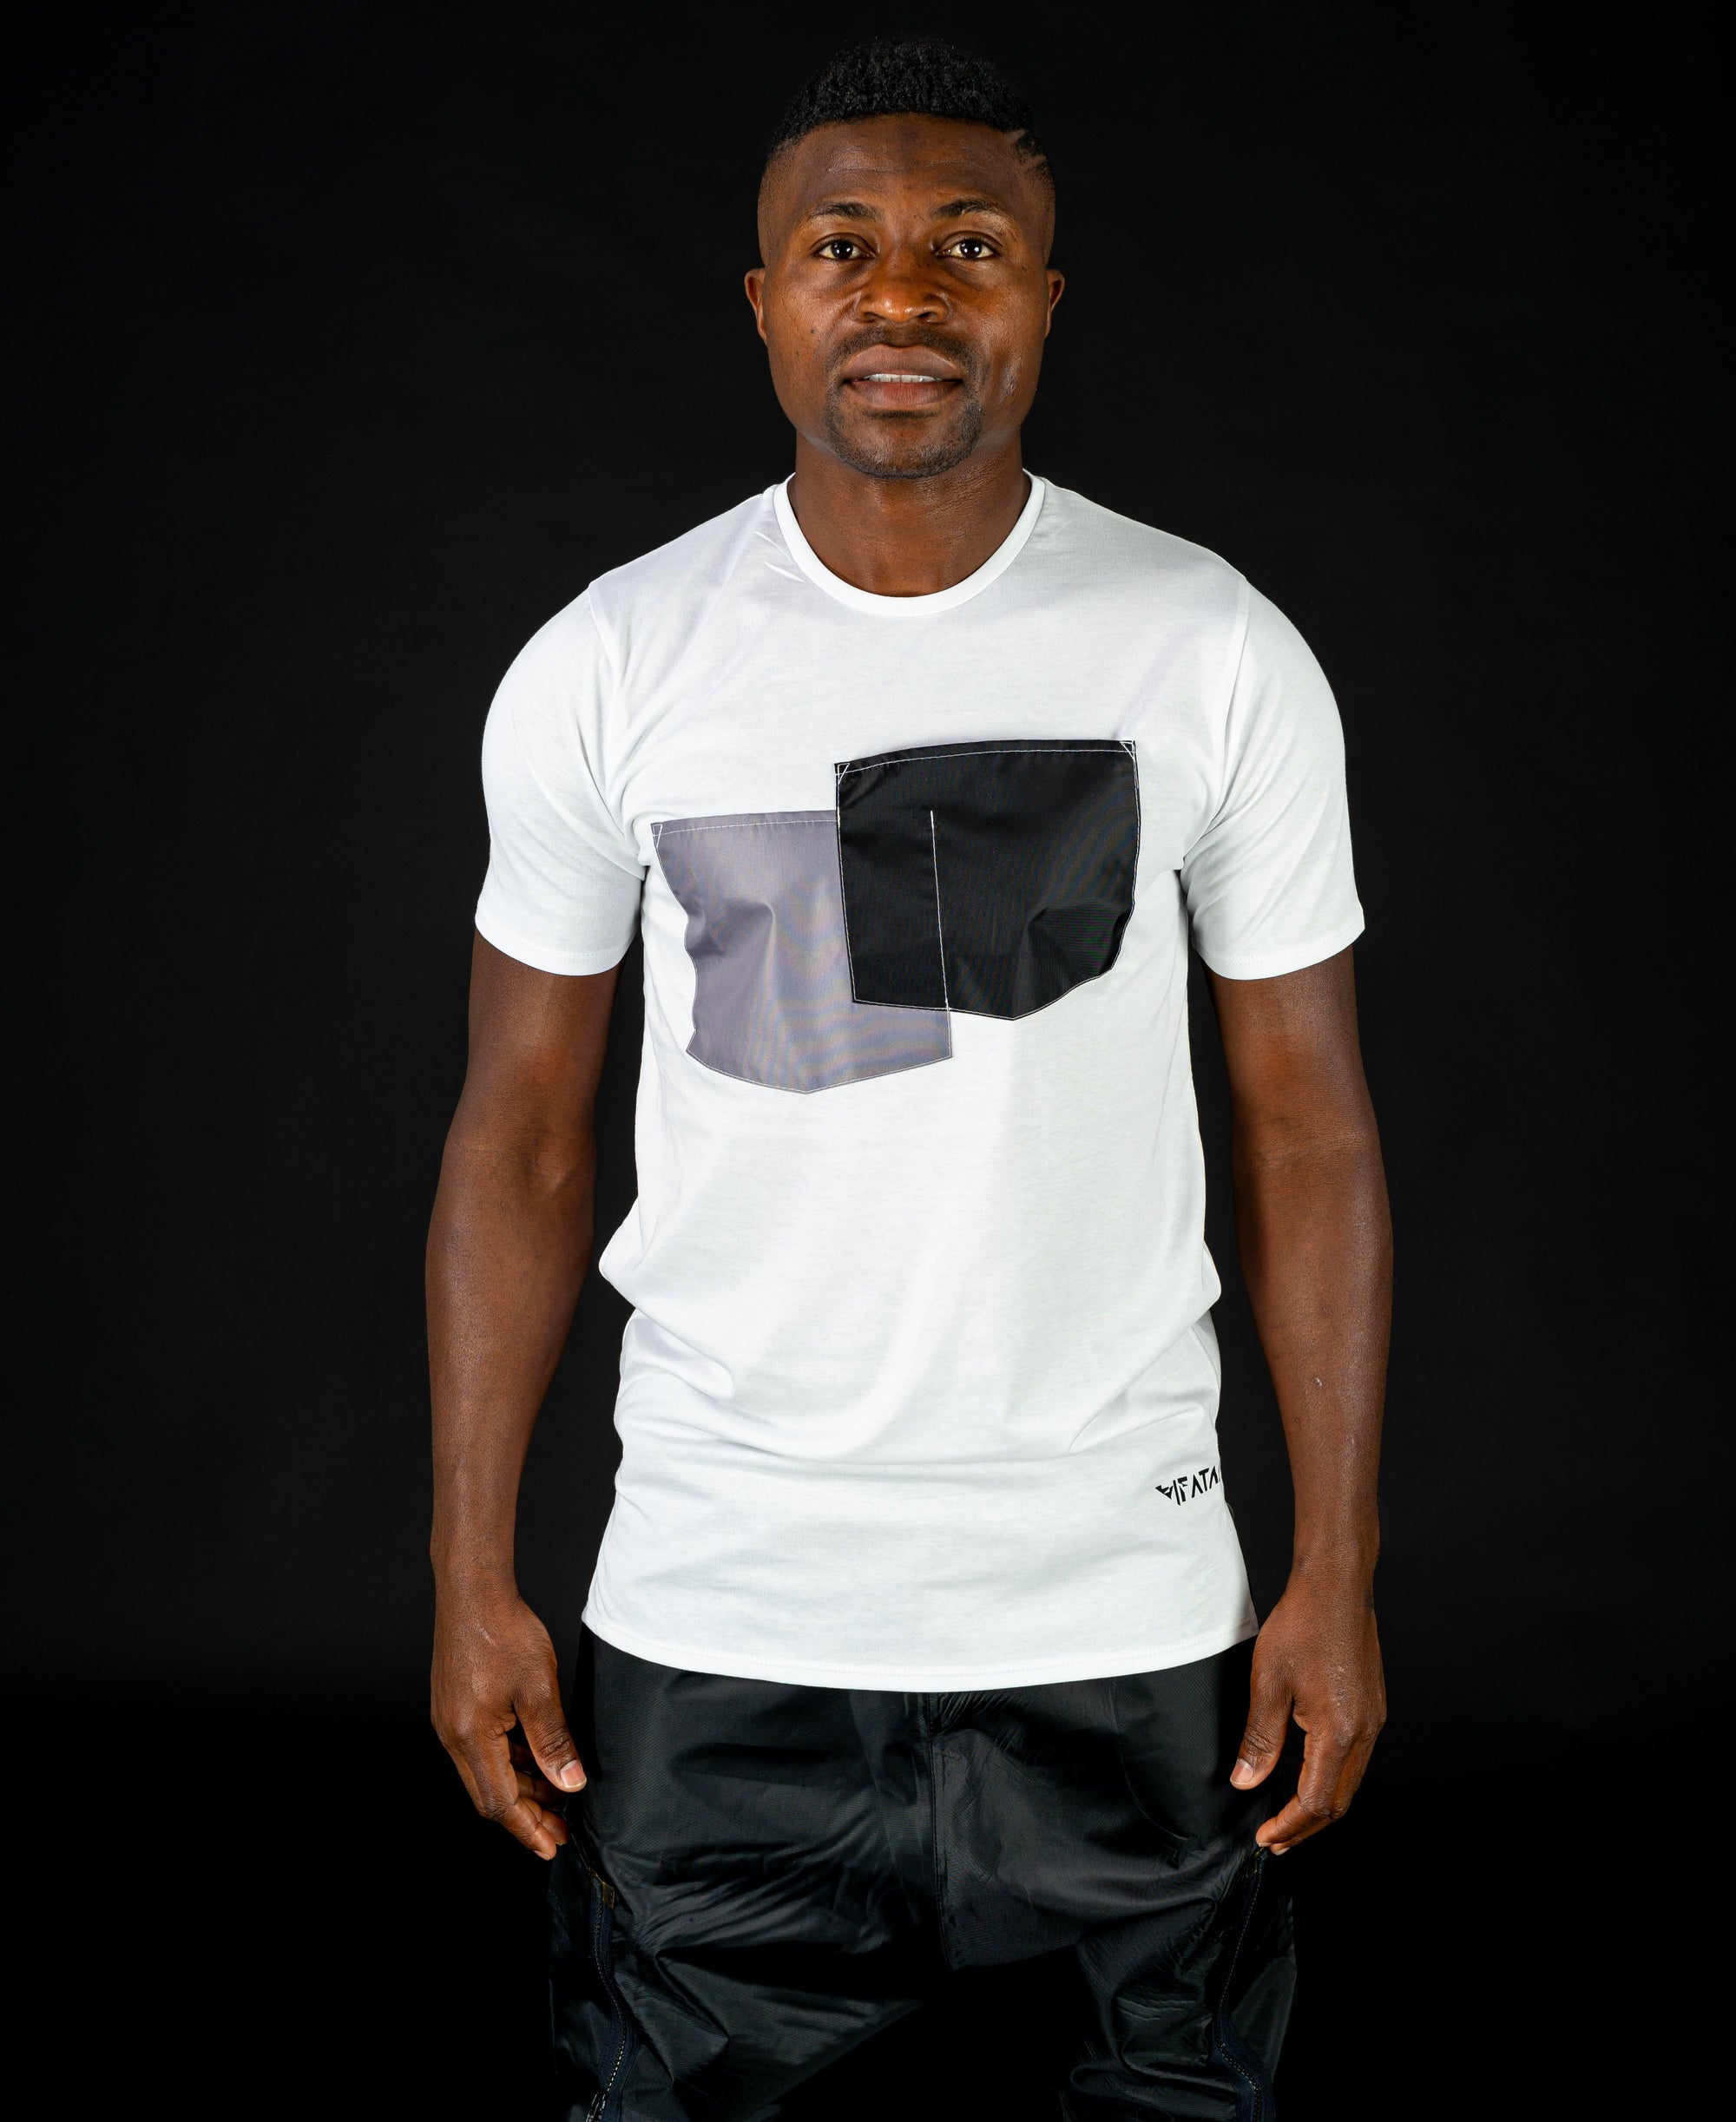 White t-shirt with black and grey pockets - Fatai Style